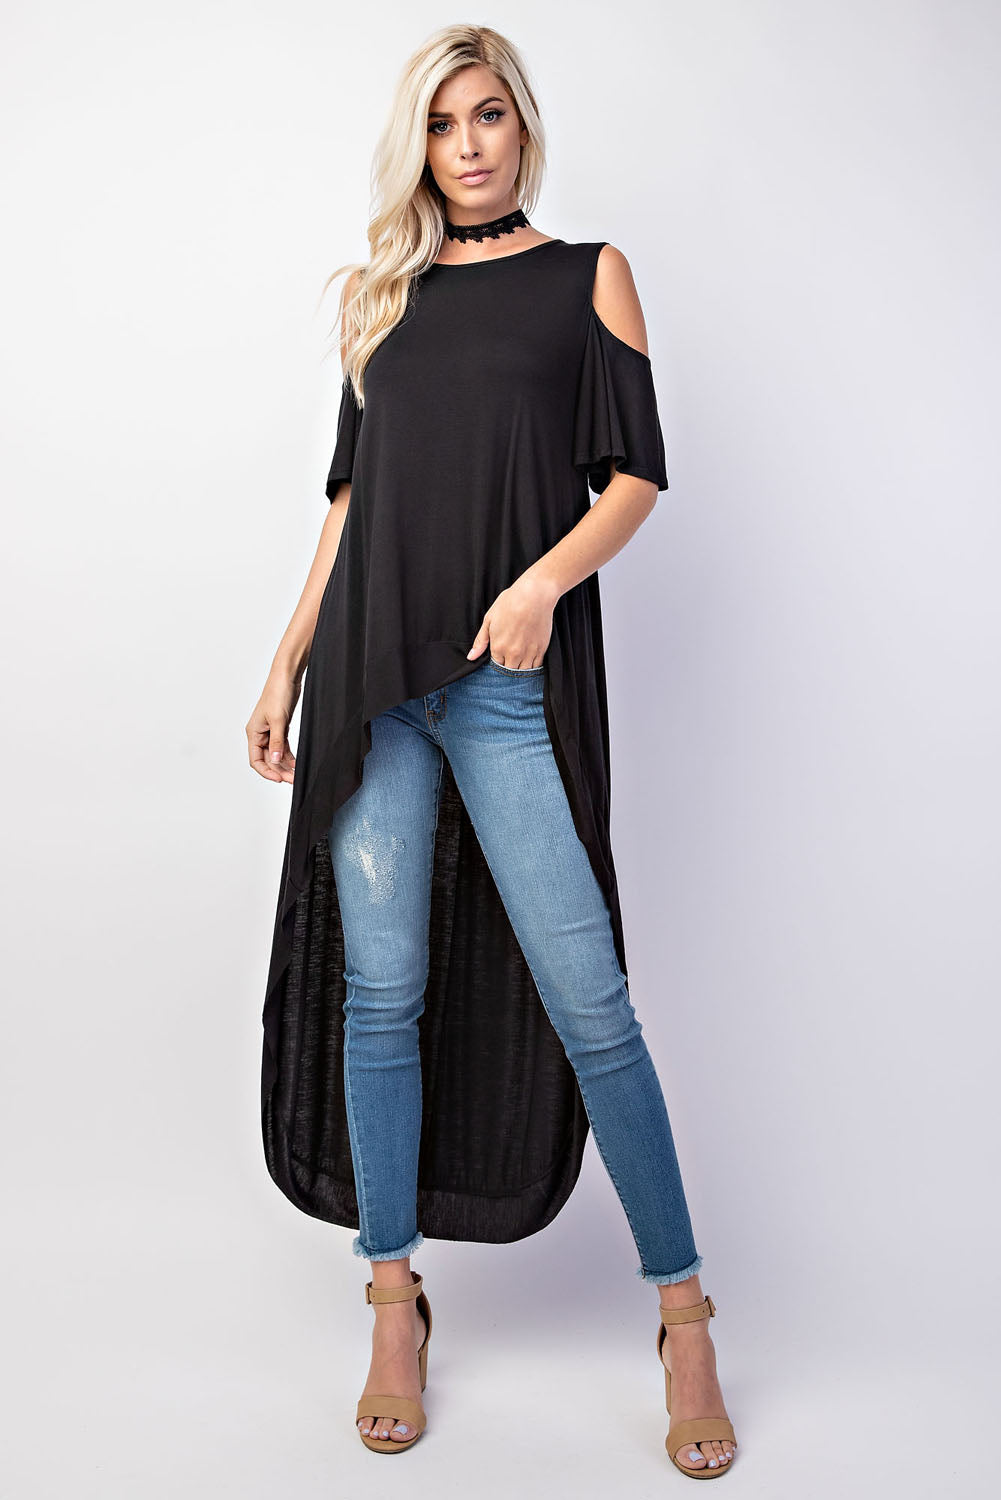 Cold Shoulder Deep Hi-Lo Knit Top - besties STUDIOS